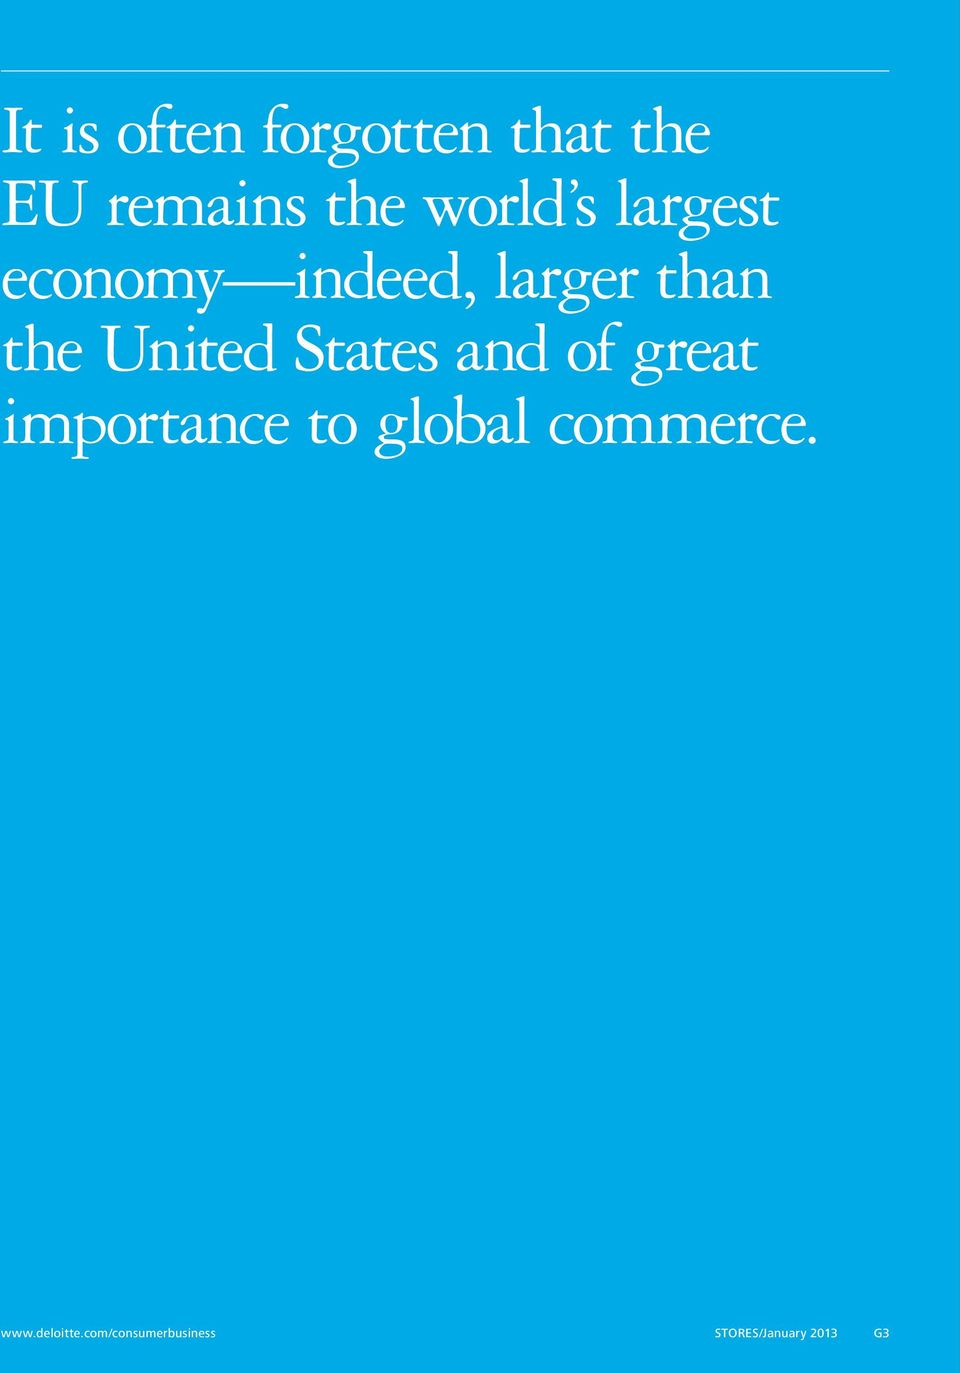 States and of great importance to global commerce.